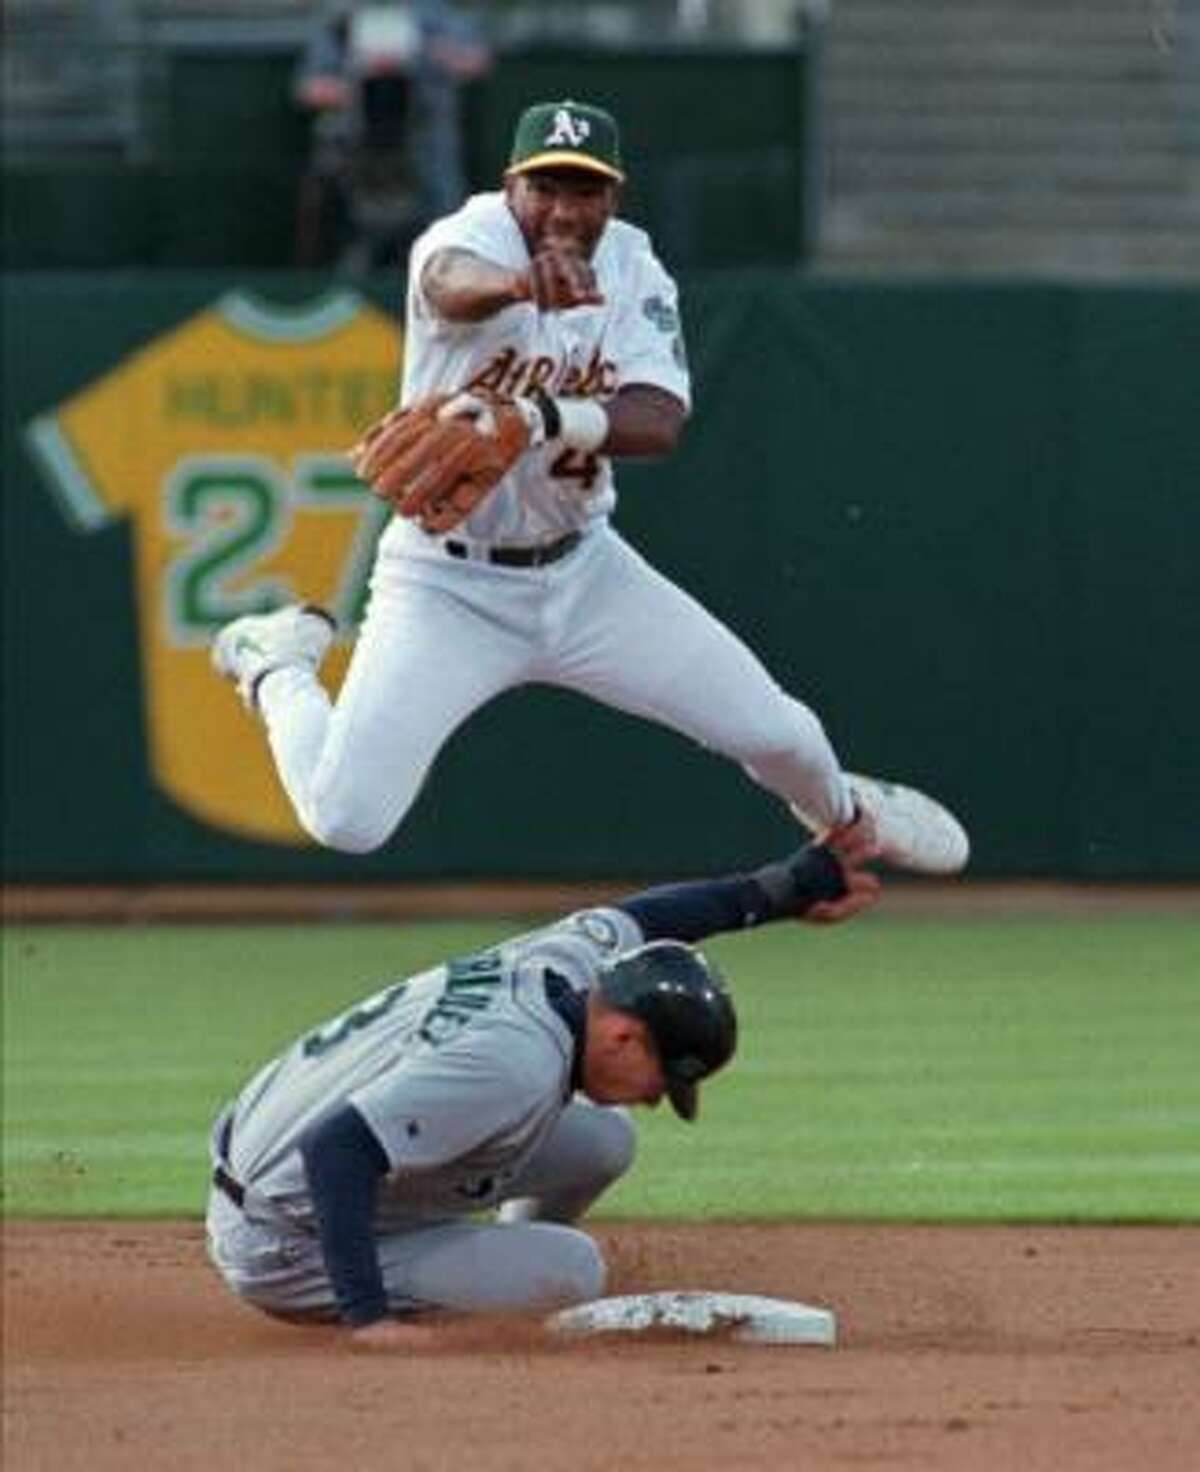 1998: Miguel Tejada, seen here leaping over a young Alex Rodriguez (also in the news this week), played his first full season with the 1998 Athletics.